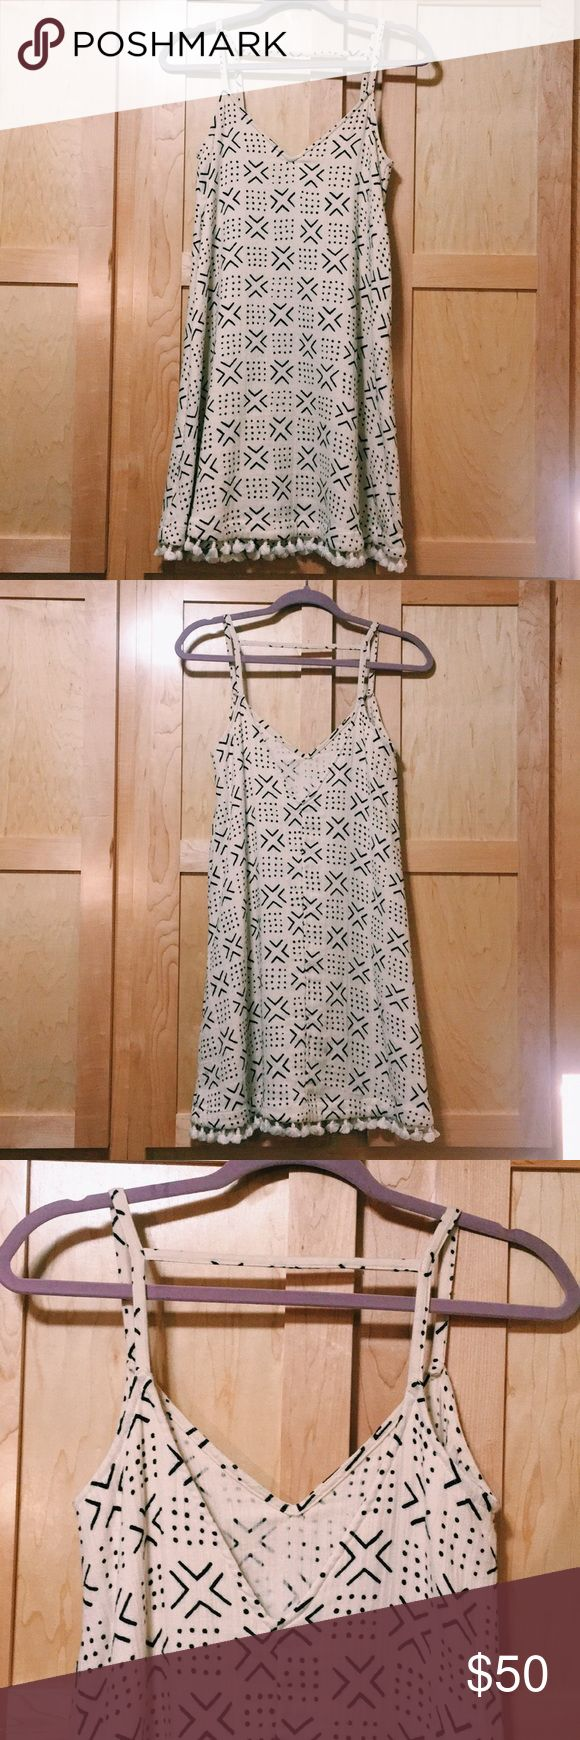 Madewell Beach Tassel Fringe Vneck Strap Dress HELLO SUMMER! This dress is so FUN!  A cream light material with a modern Aztec print and tassel fringe at the bottom! Lovely strap detail on the back. Perfect for cruising around in sandals on a warm summer day. Size XXS but fits like a SM/MED!! Very loose for Madewell. Worn only once! Madewell Dresses Mini